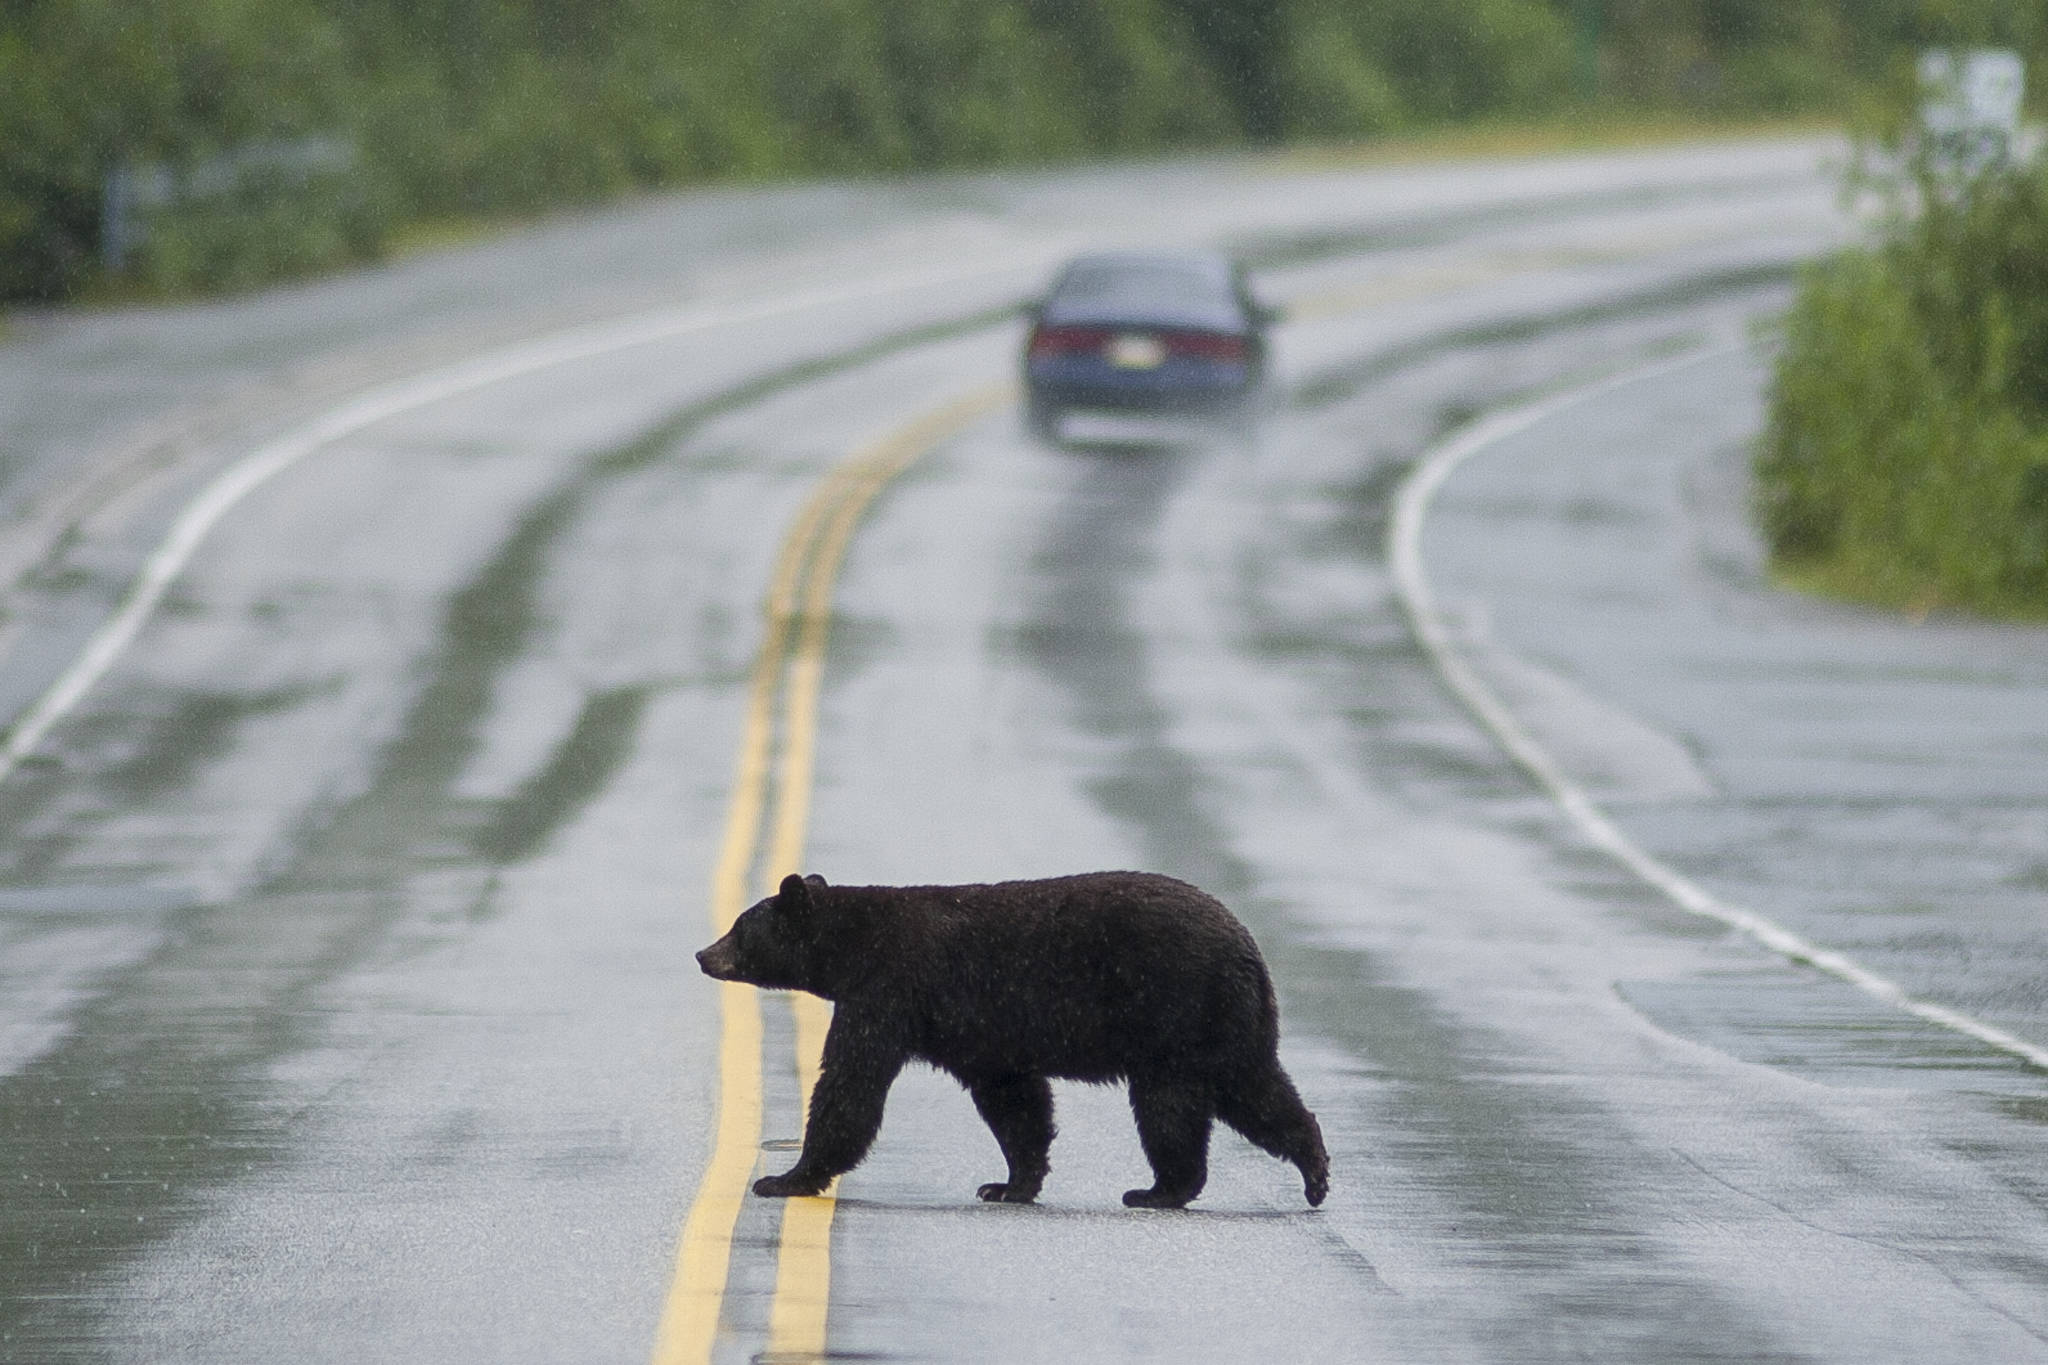 A black bear crosses the Glacier Spur Road in August 2008. This is likely not the bear that was hit and killed this past weekend. (Michael Penn | Juneau Empire)